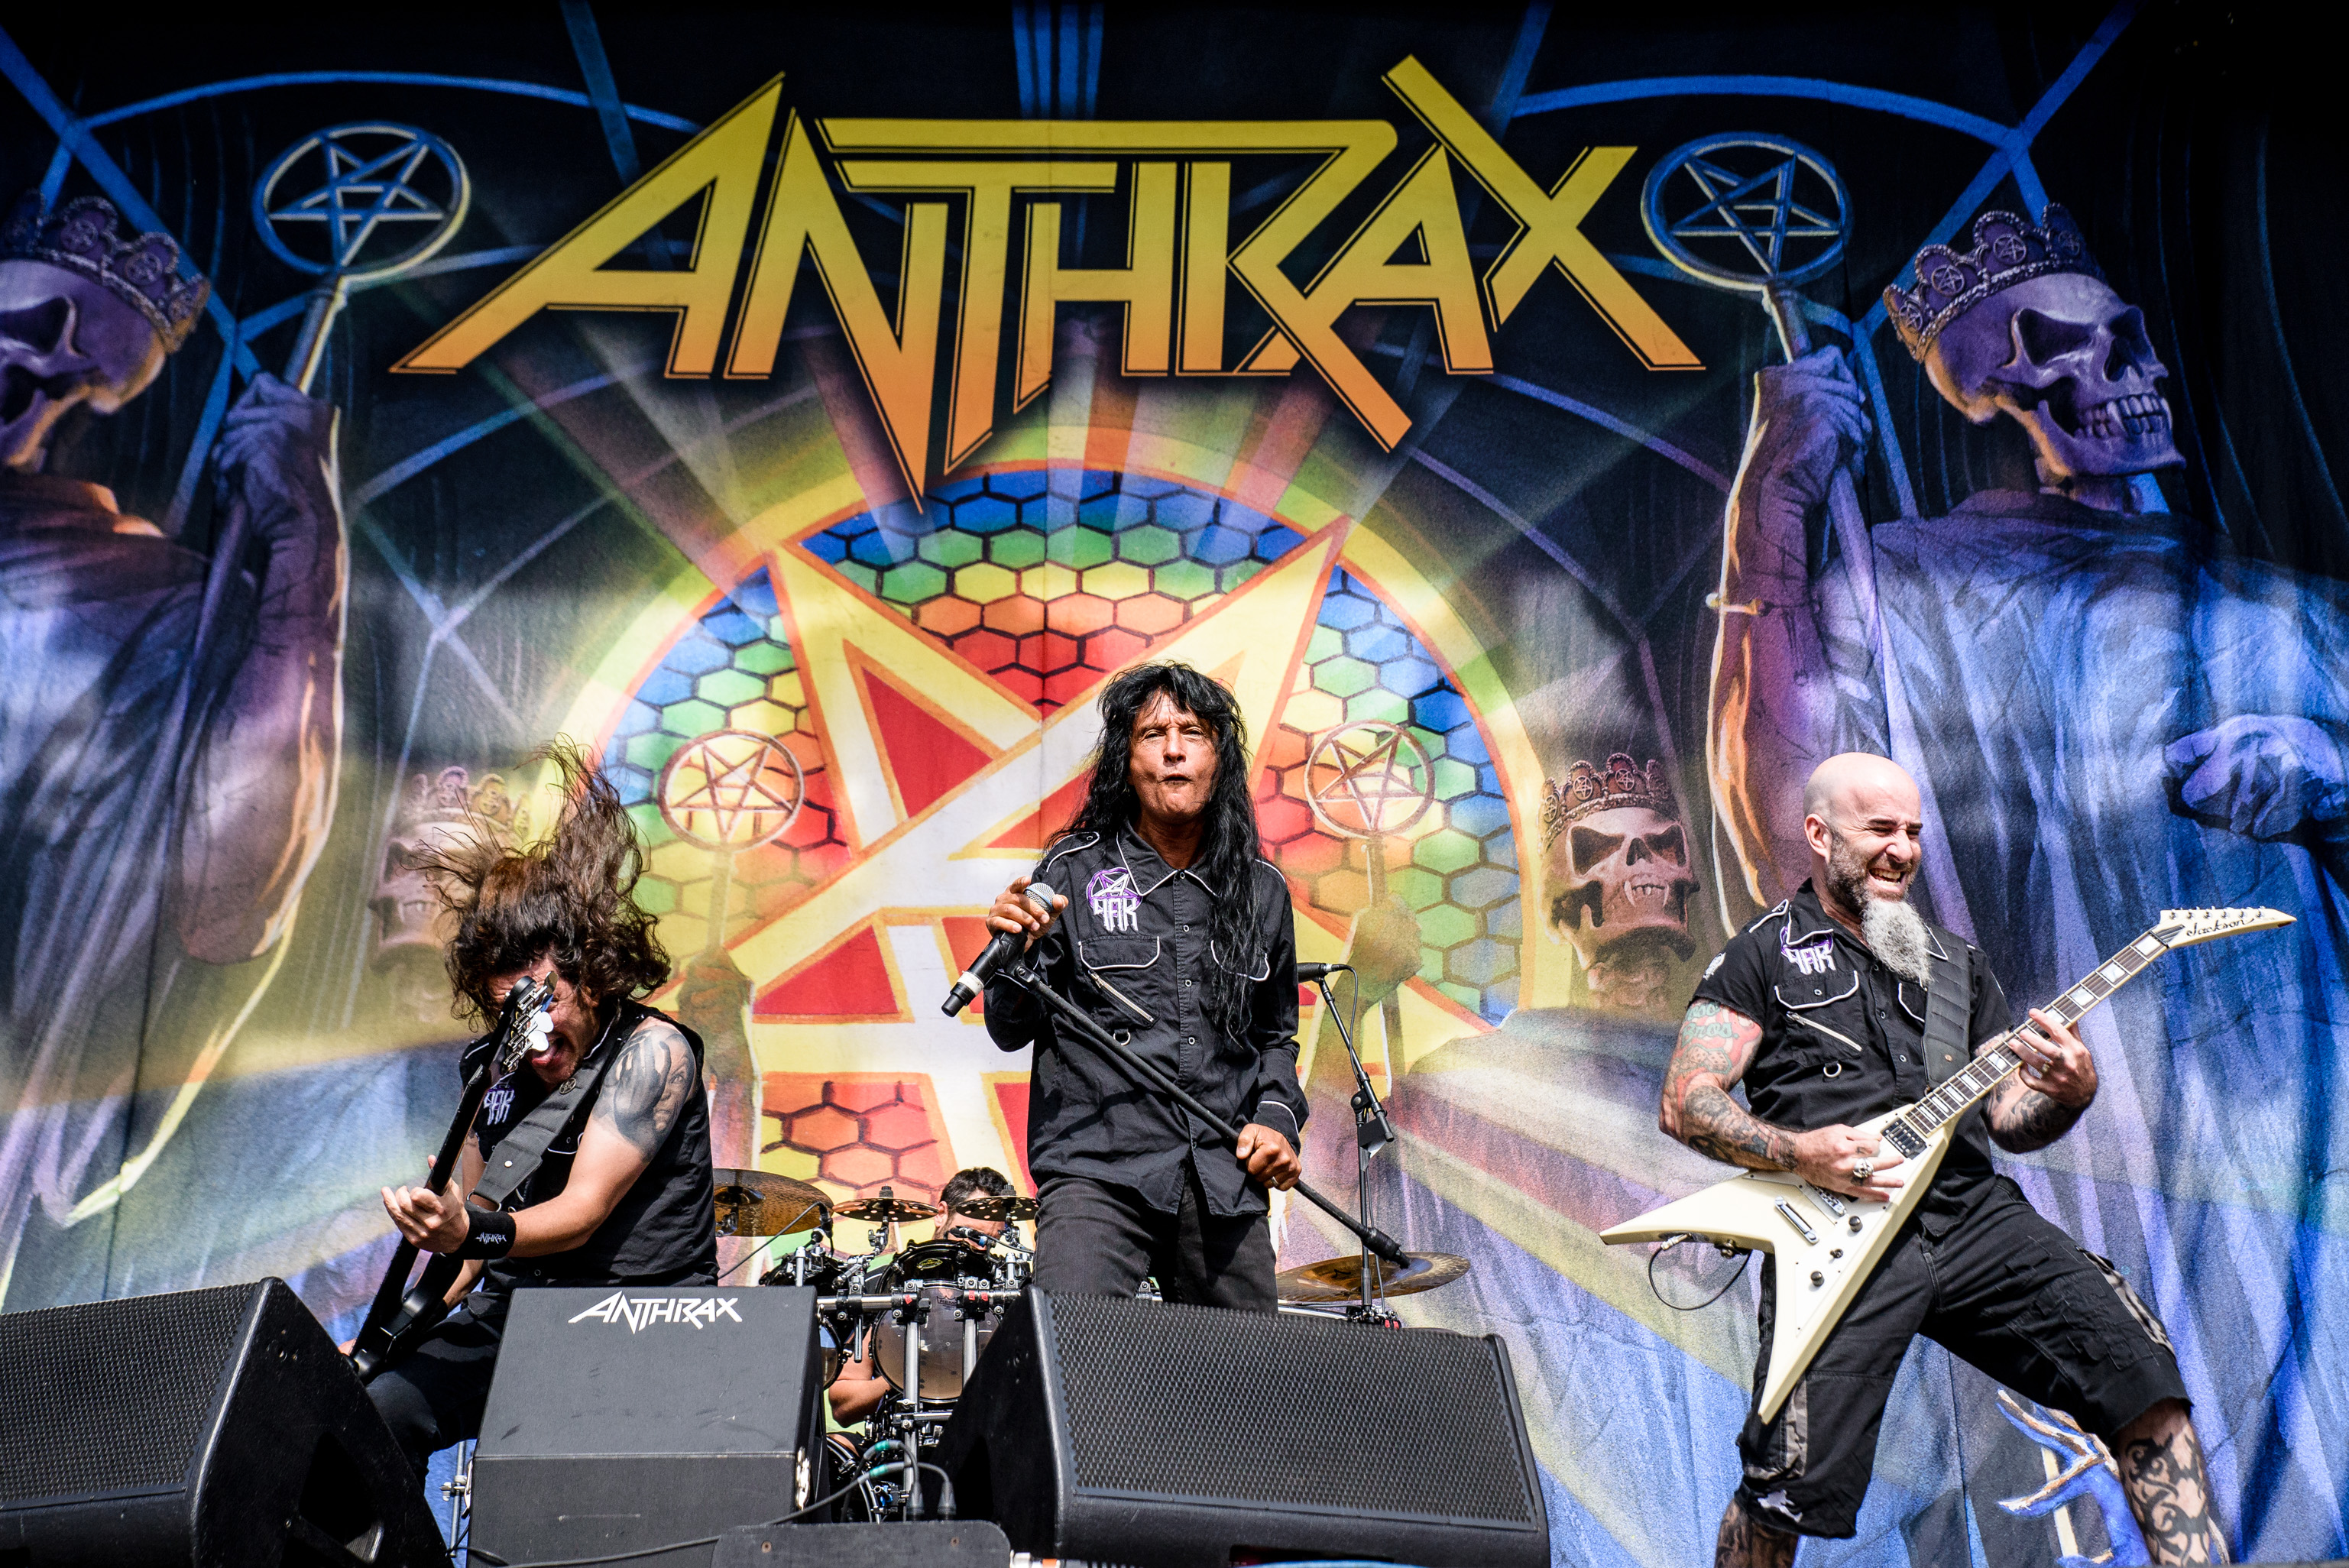 Anthrax (American band) - Wikipedia